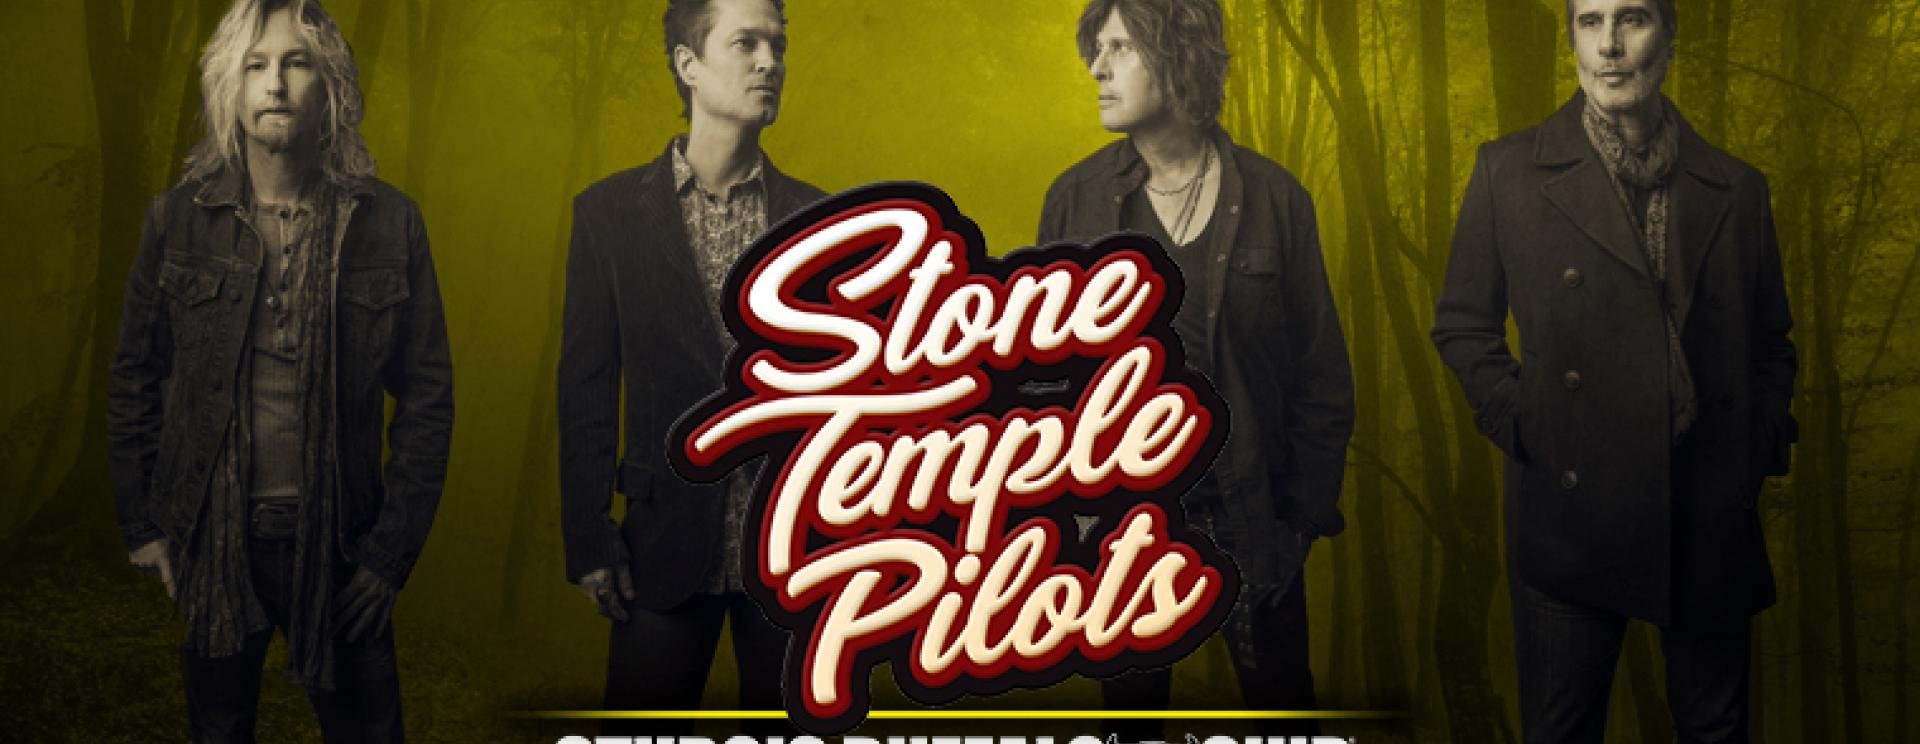 Stone Temple Pilots at the Sturgis Buffalo Chip